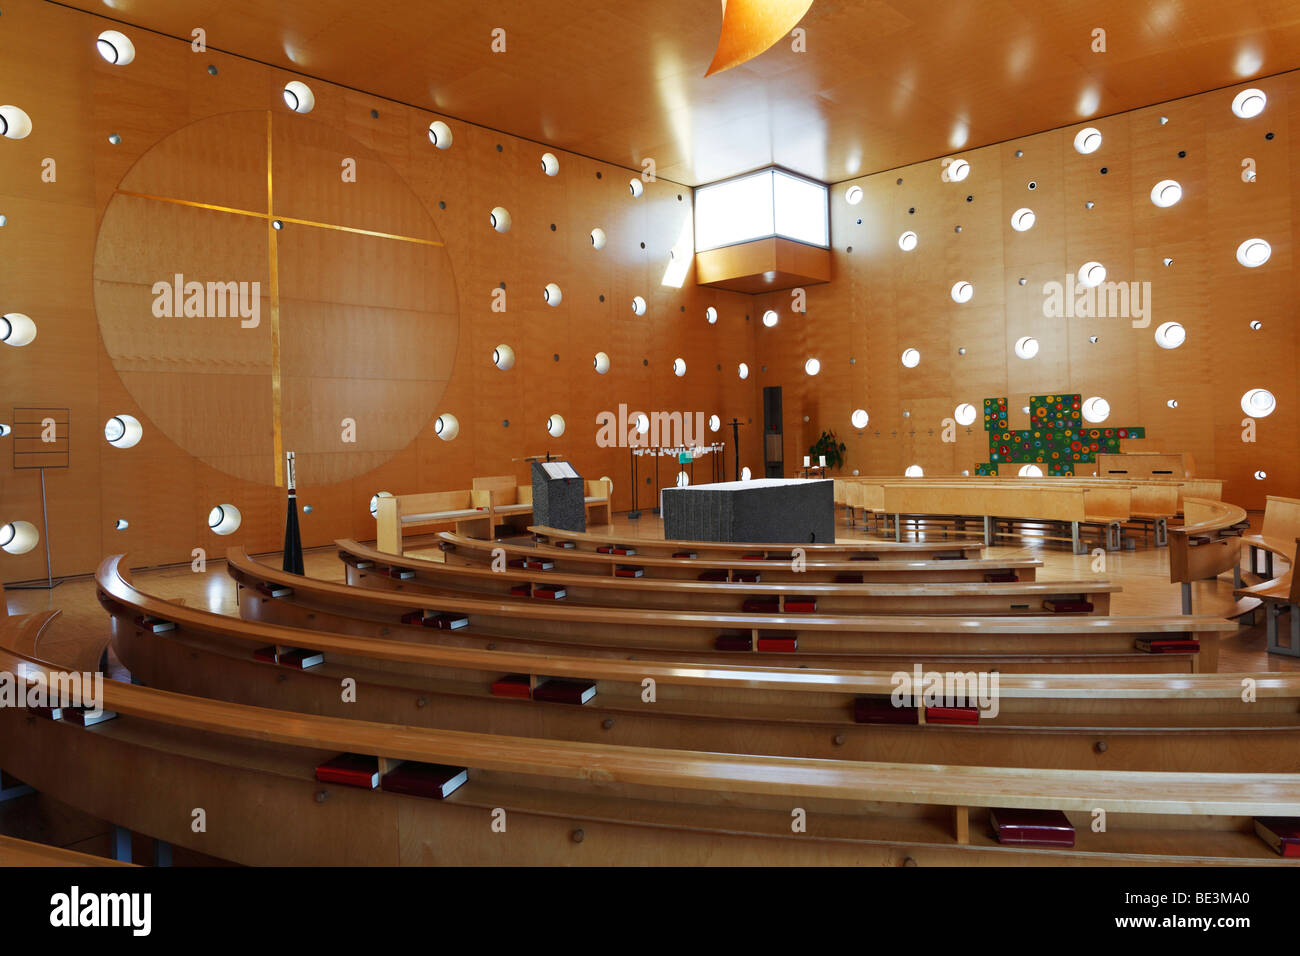 'Christus, Hoffnung der Welt' Church, Donau City Church, Donau City, UNO-City in the back, Vienna, Austria, - Stock Image